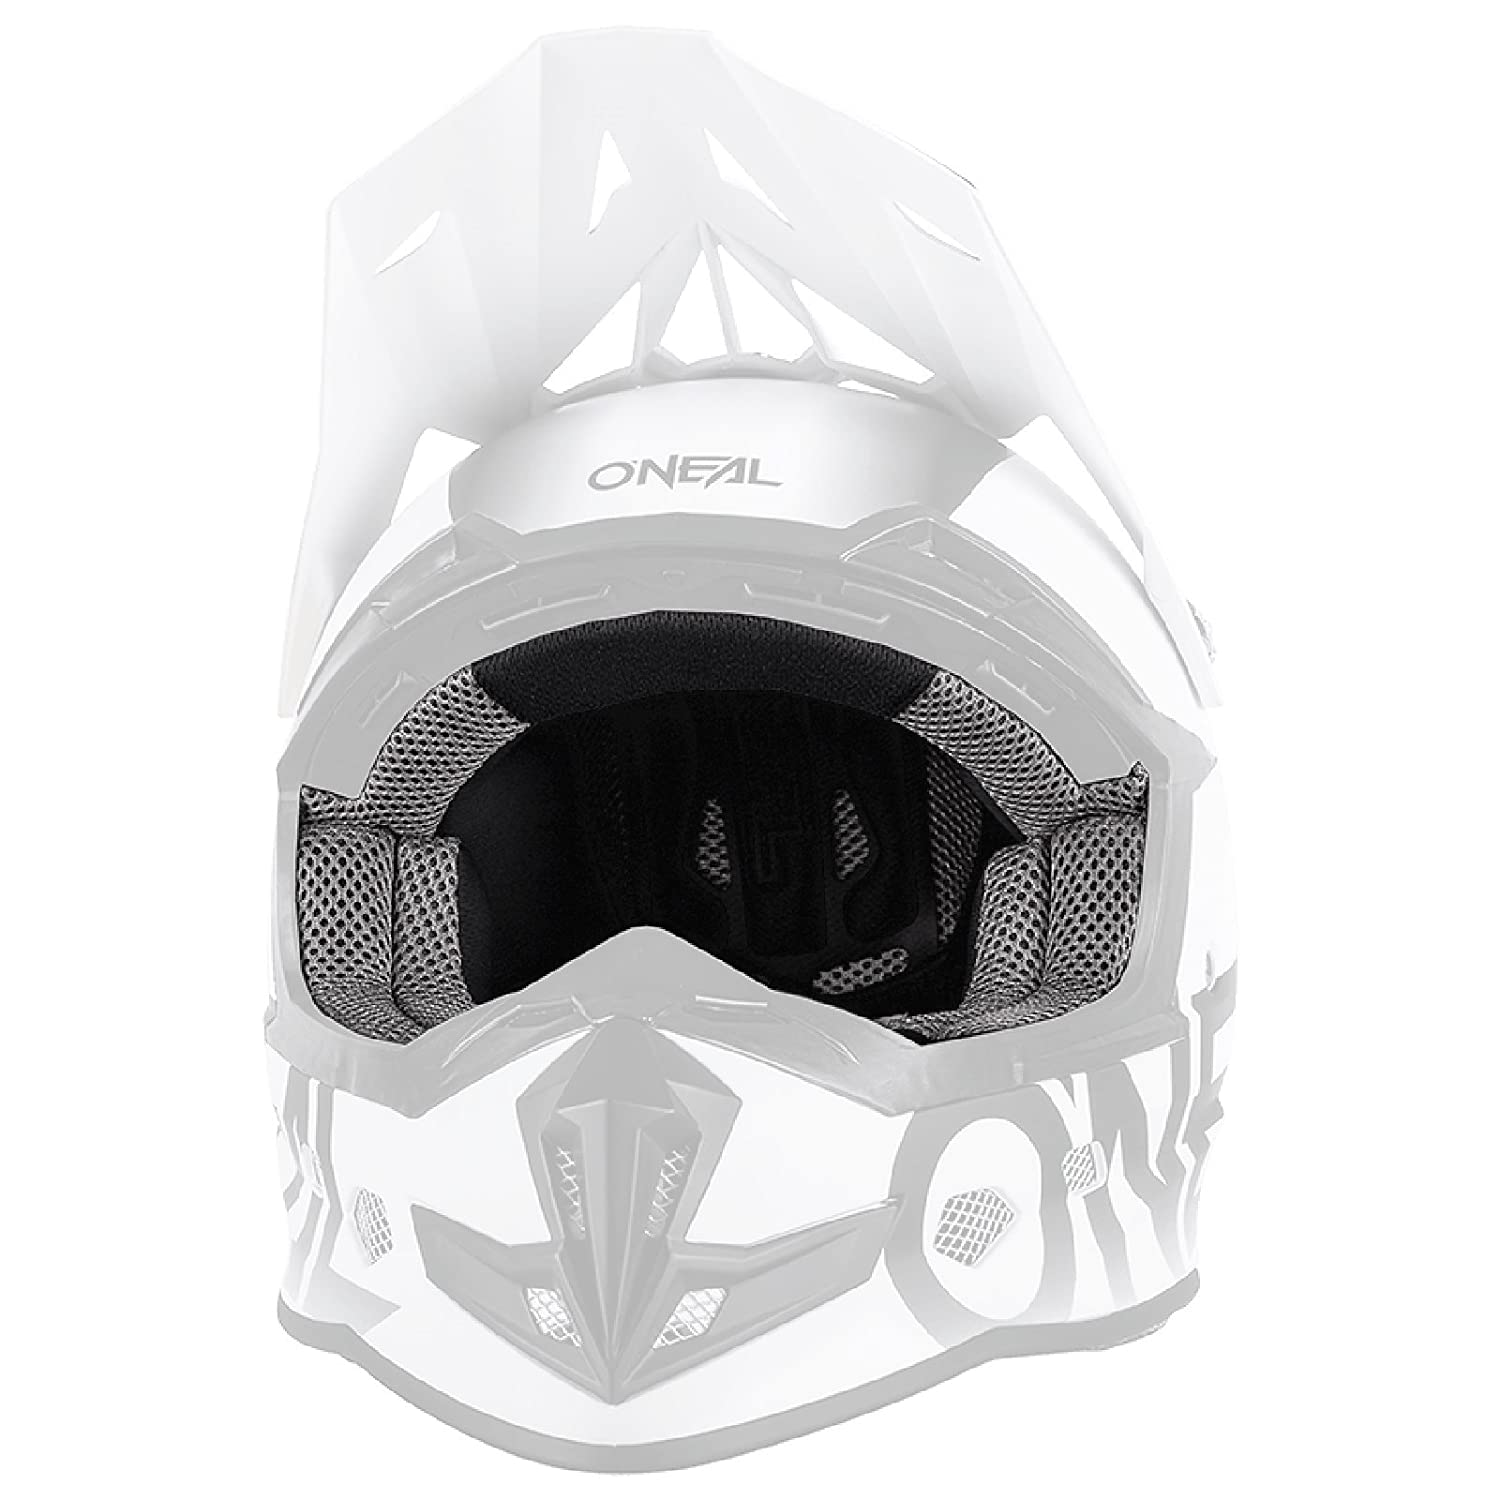 O/'Neal 0618-966 ONeal 5 Series Unisex-Adult Padding Kit Gray, XX-Large